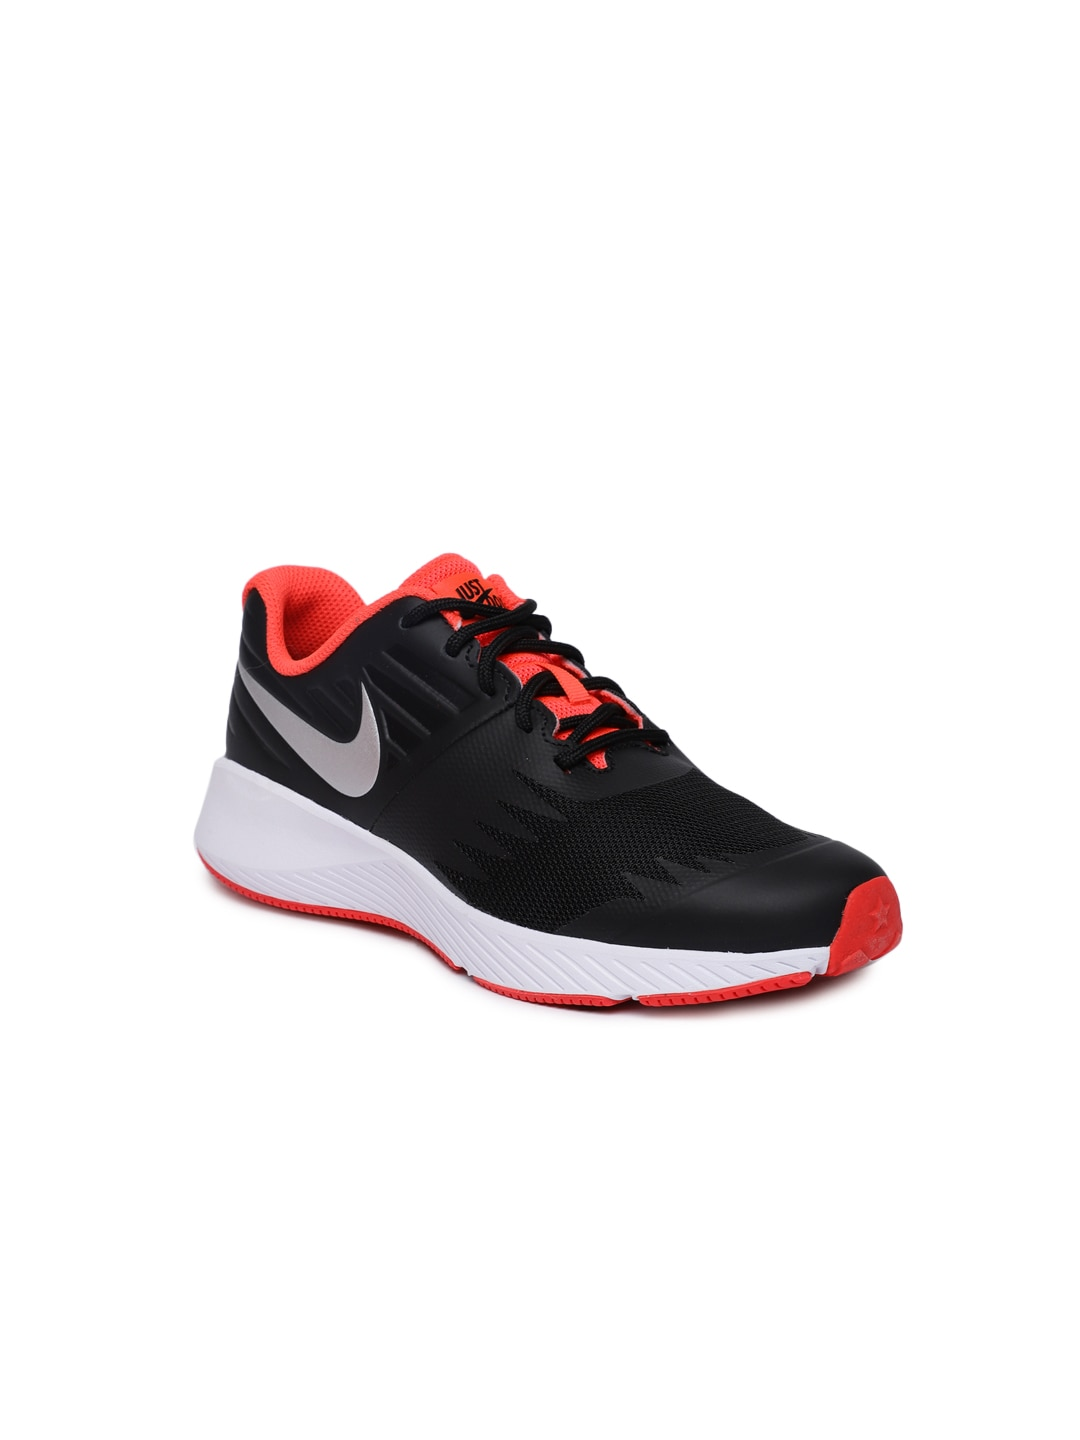 e4c7ca3ce0c Nike Running Shoes - Buy Nike Running Shoes Online